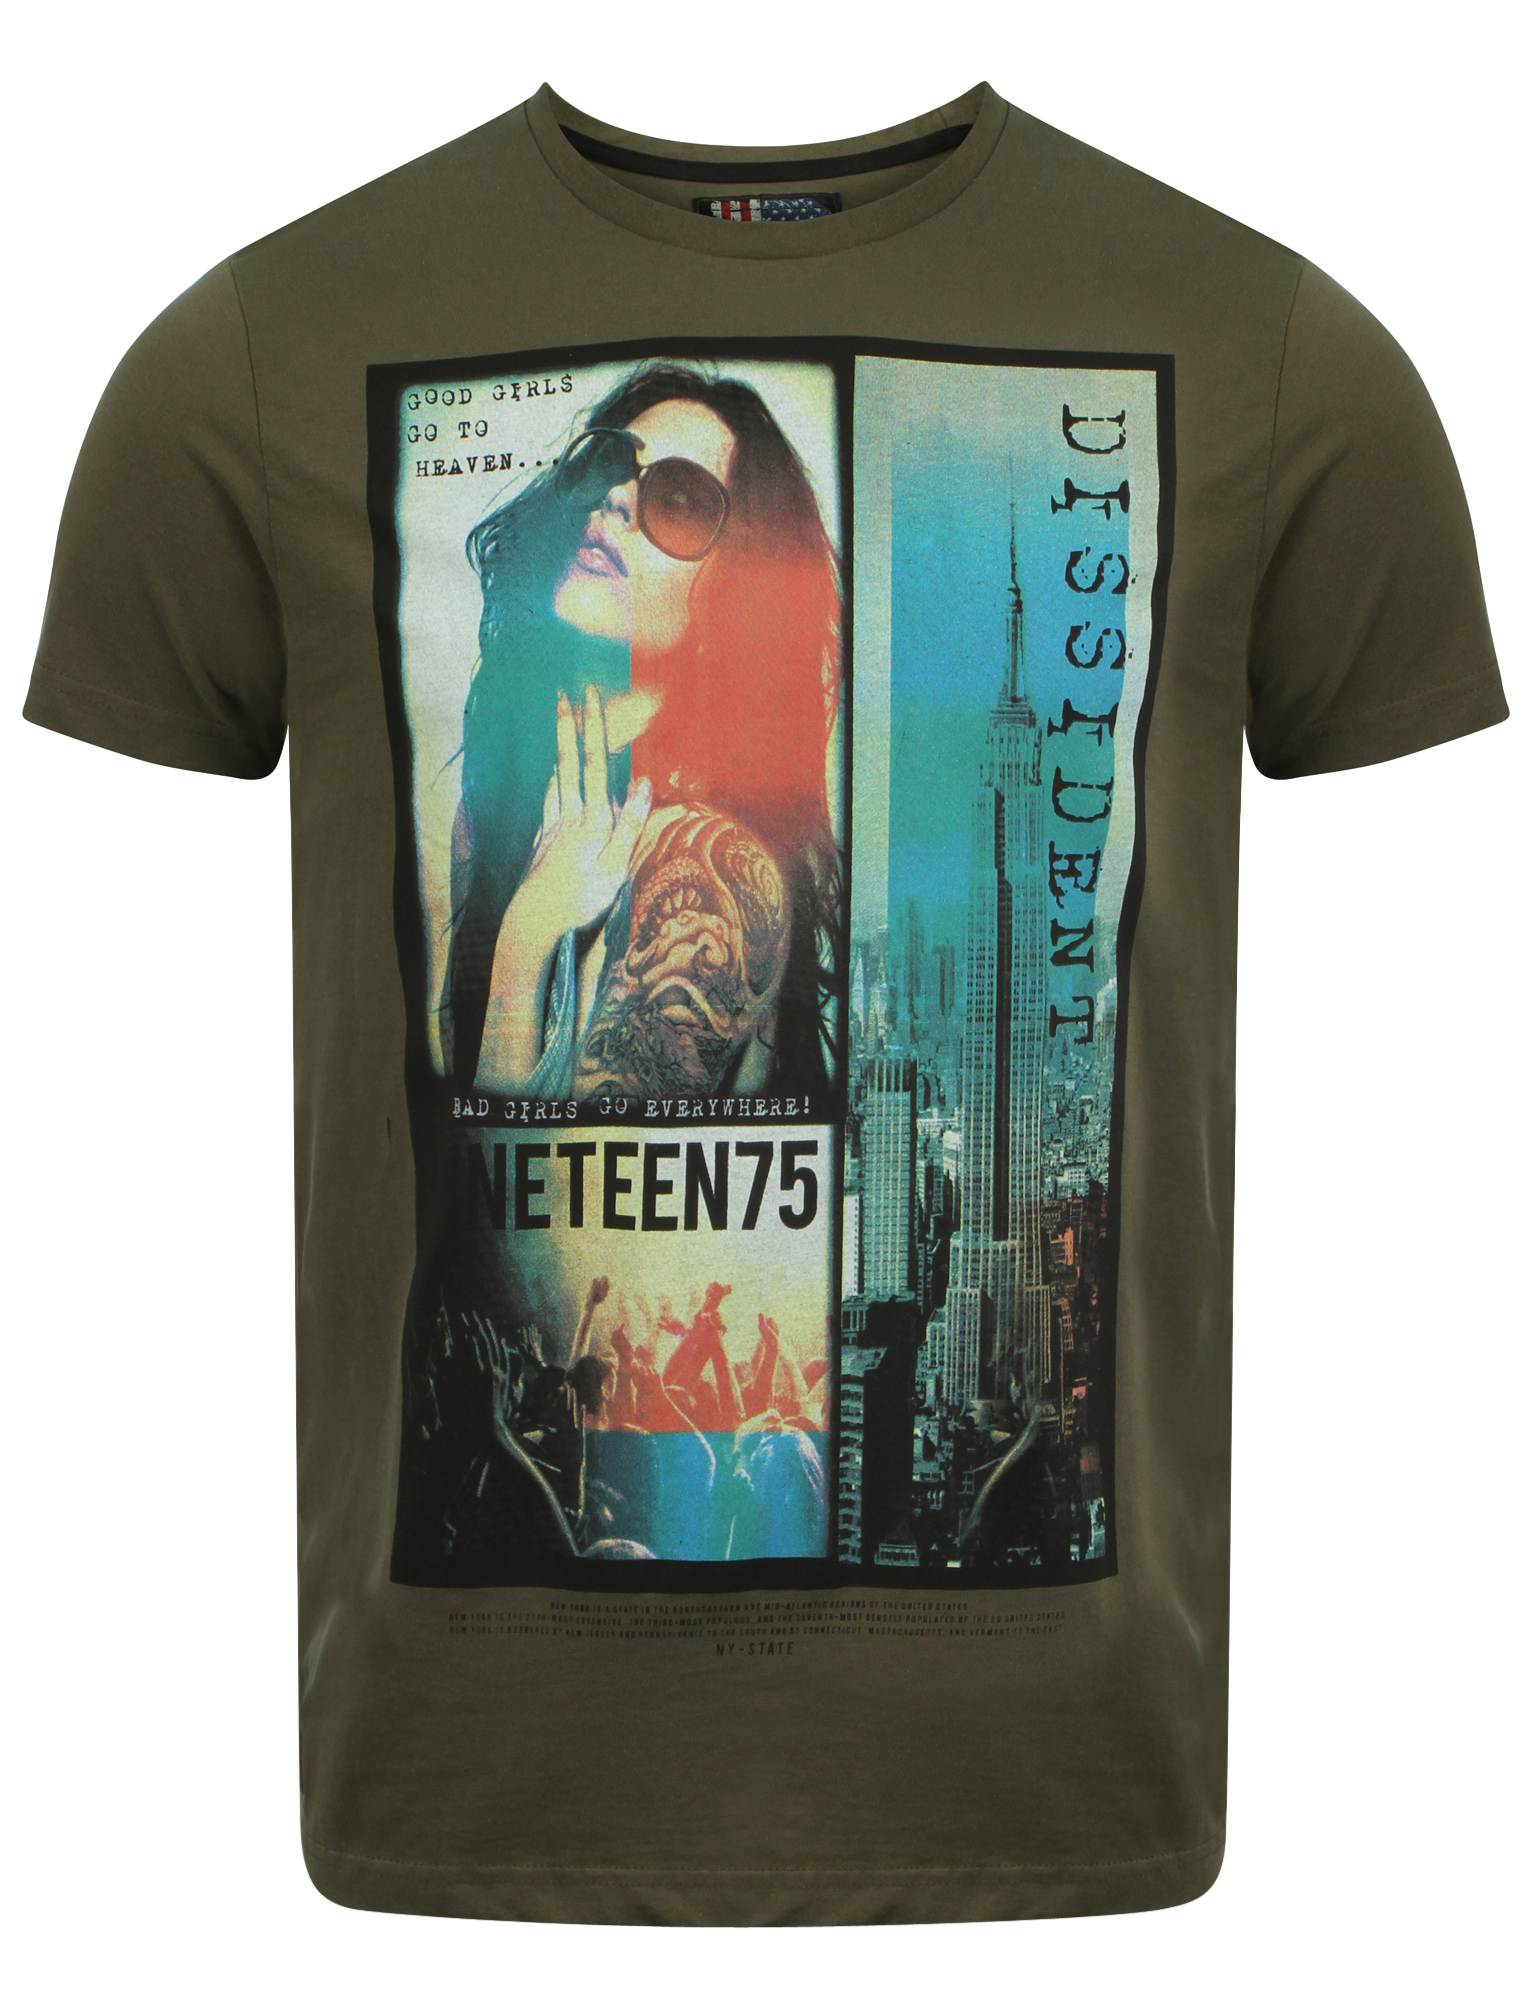 New-Mens-Dissident-Girl-Shades-Graphic-Print-T-Shirt-Short-Sleeve-Top-Size-S-XL